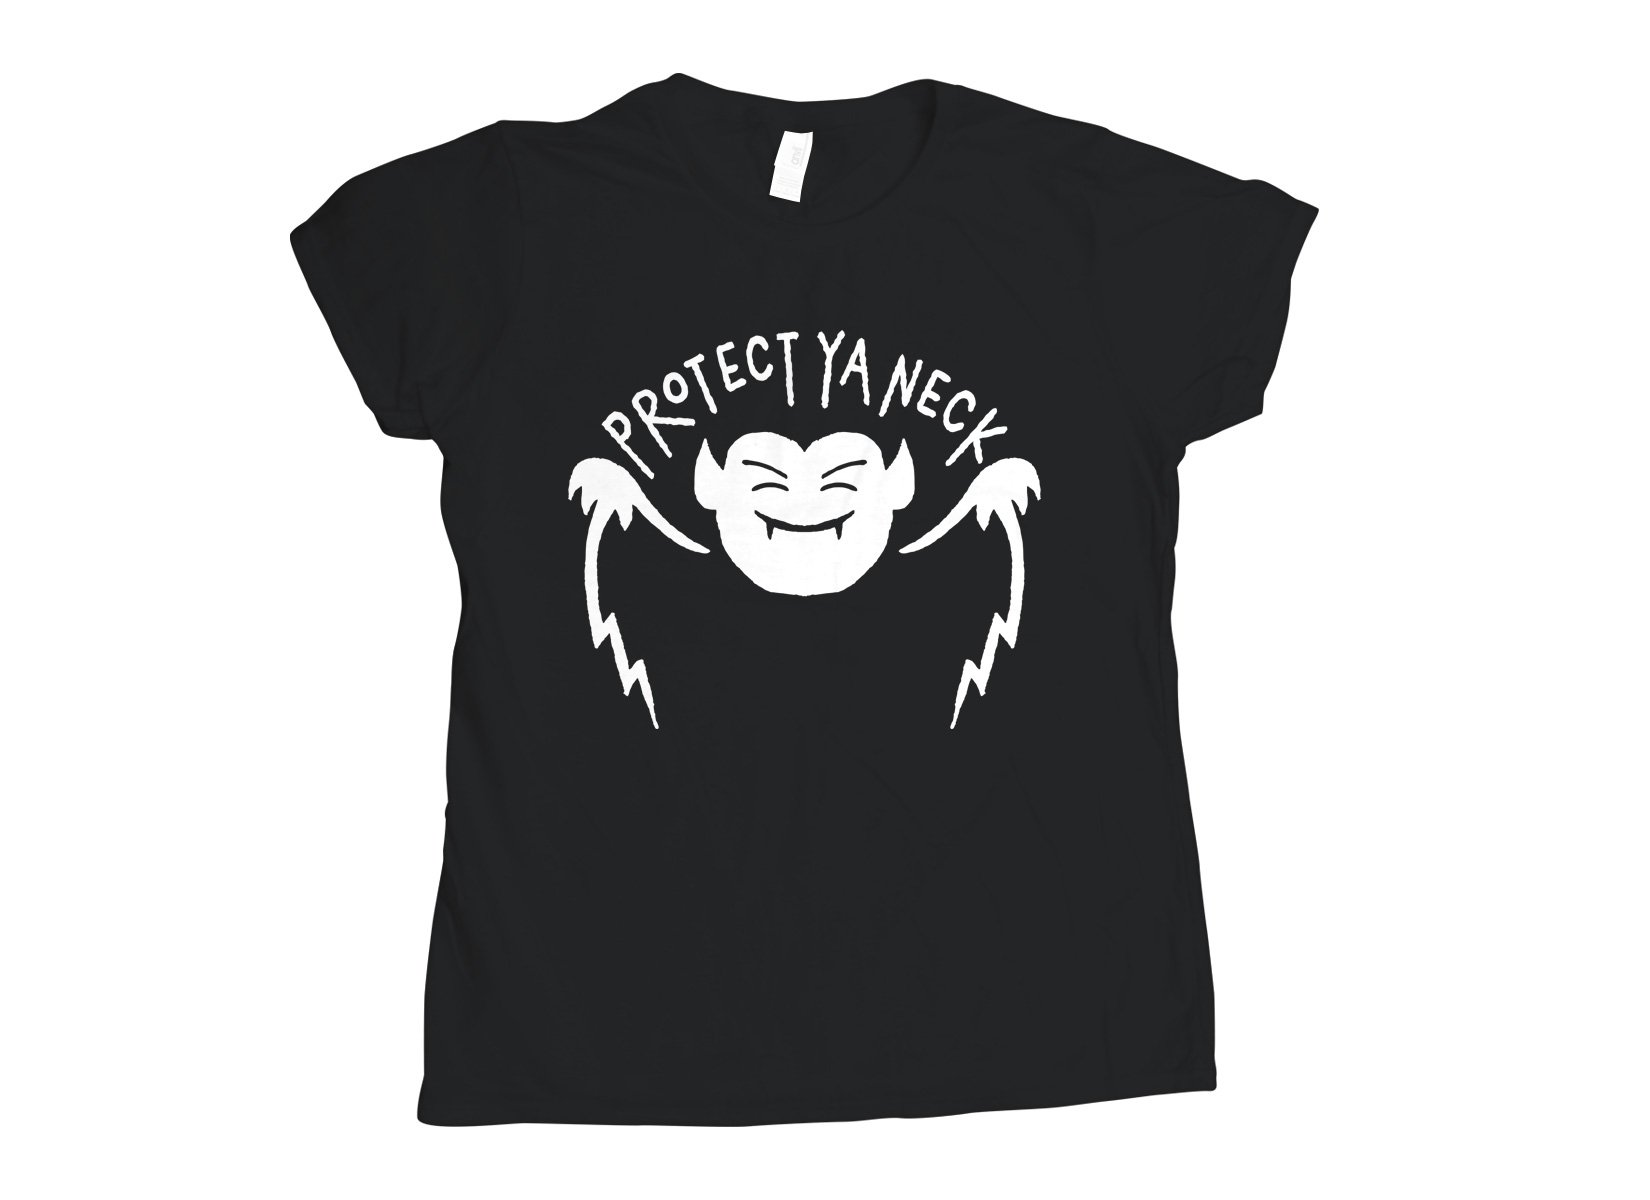 Protect Ya Neck on Womens T-Shirt